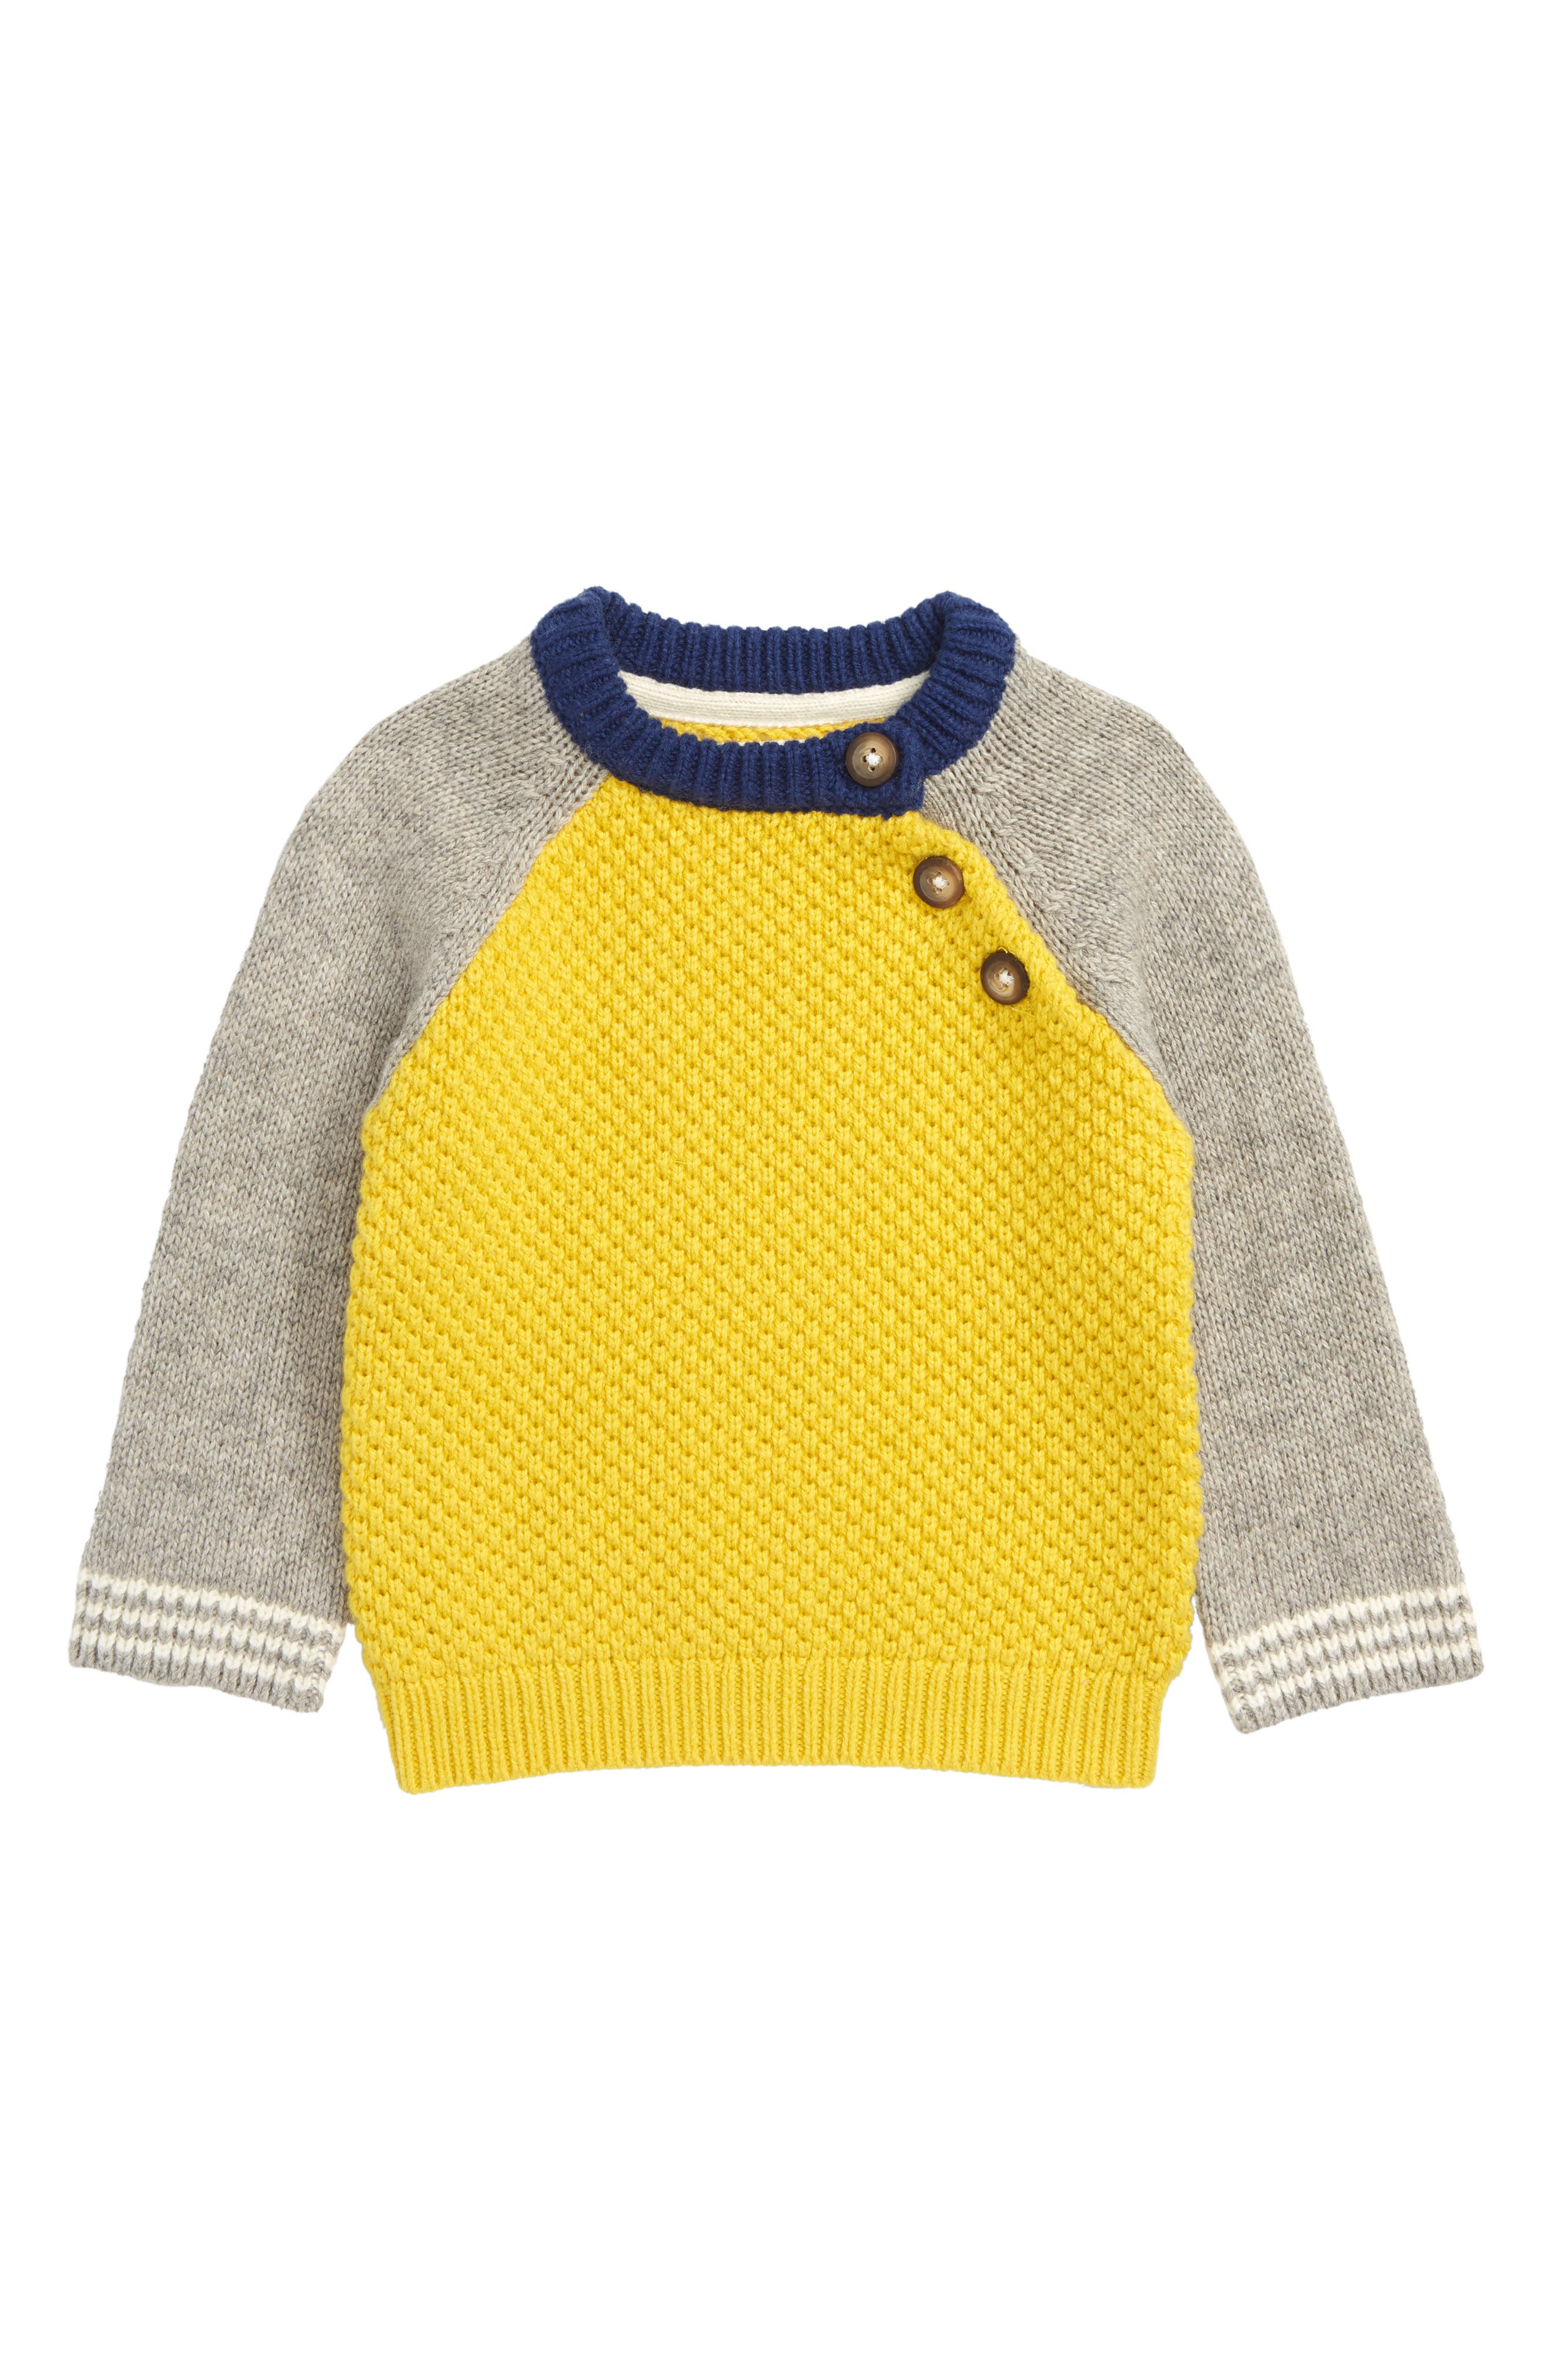 Hotchpotch Knit Sweater,                         Main,                         color, 724